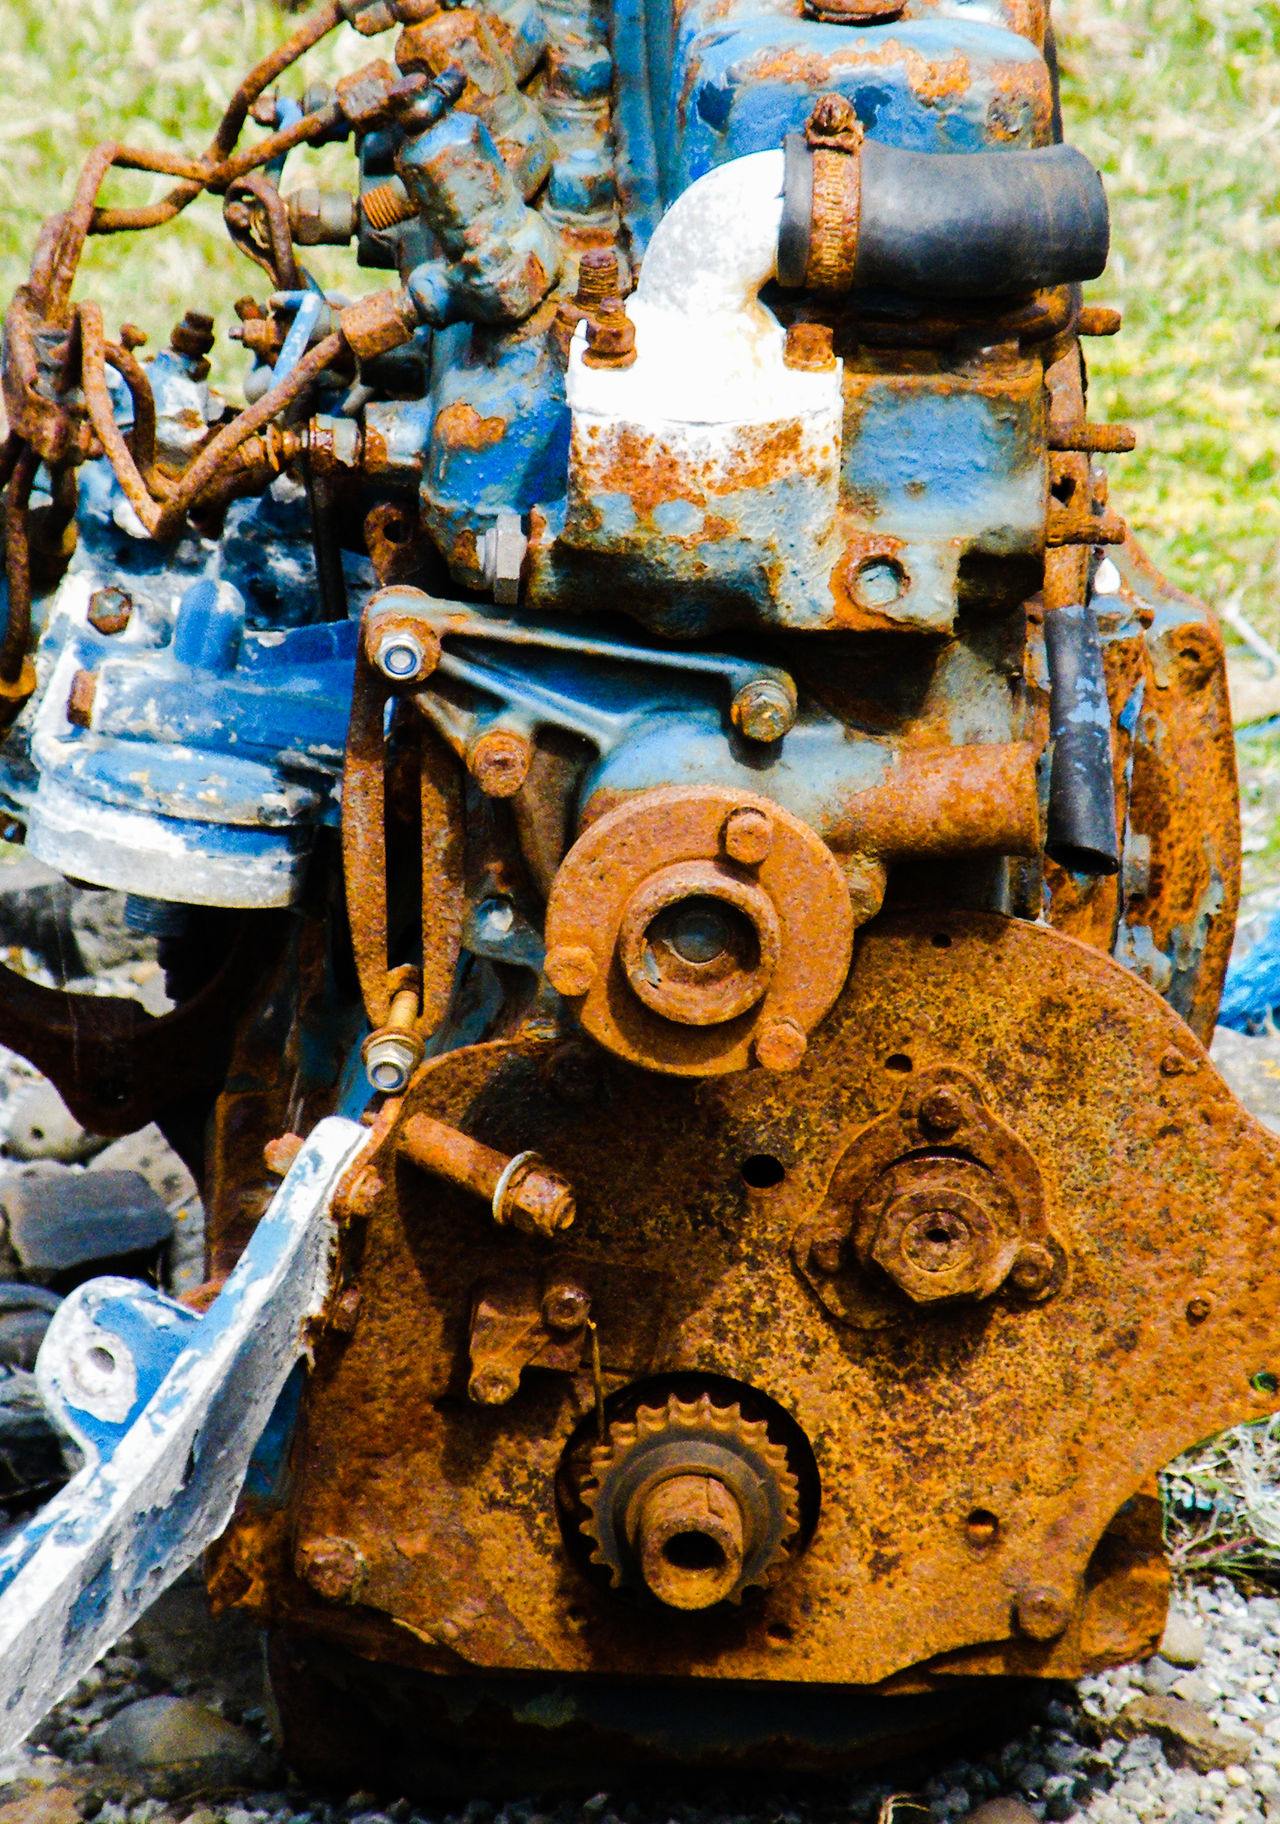 Close-up Day Industry Machine Part Metal No People Nut - Fastener Old Engine Outdoors Rusty Rusty Metal